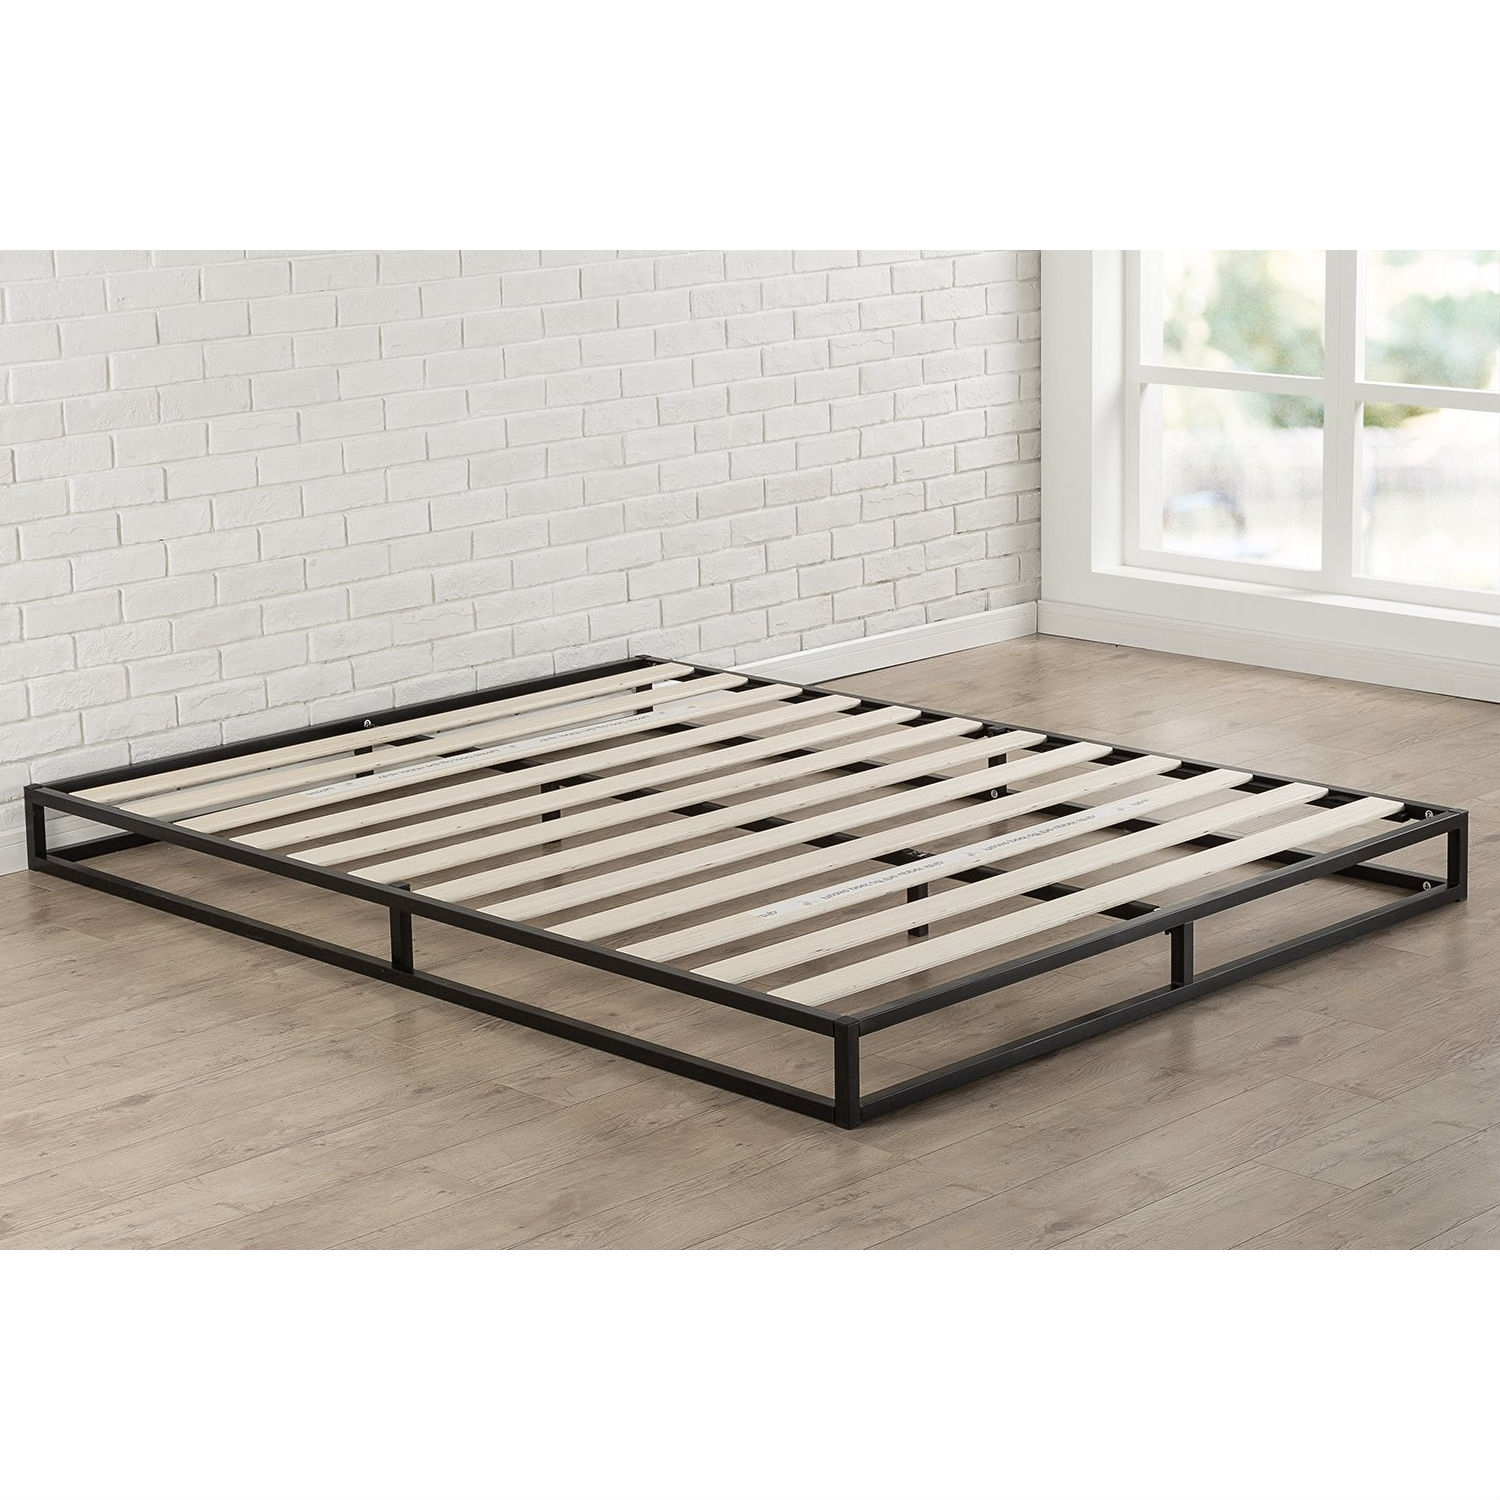 retail price 19900 - Platform Bed Frames Full